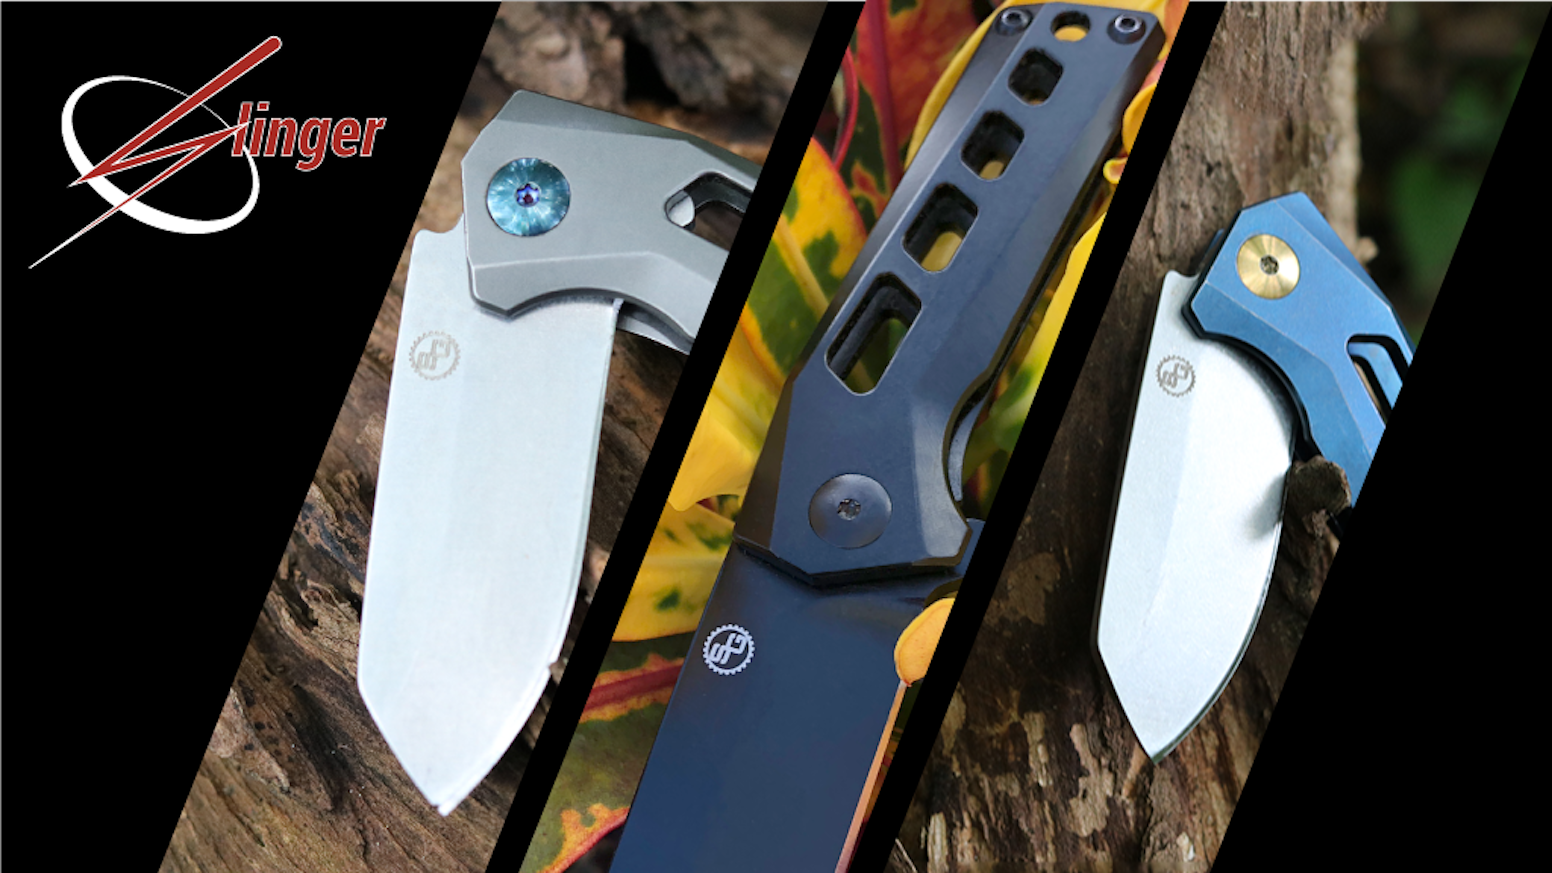 The comfort of a full-sized knife in an everyday carry size. SHIPS IN DECEMBER!